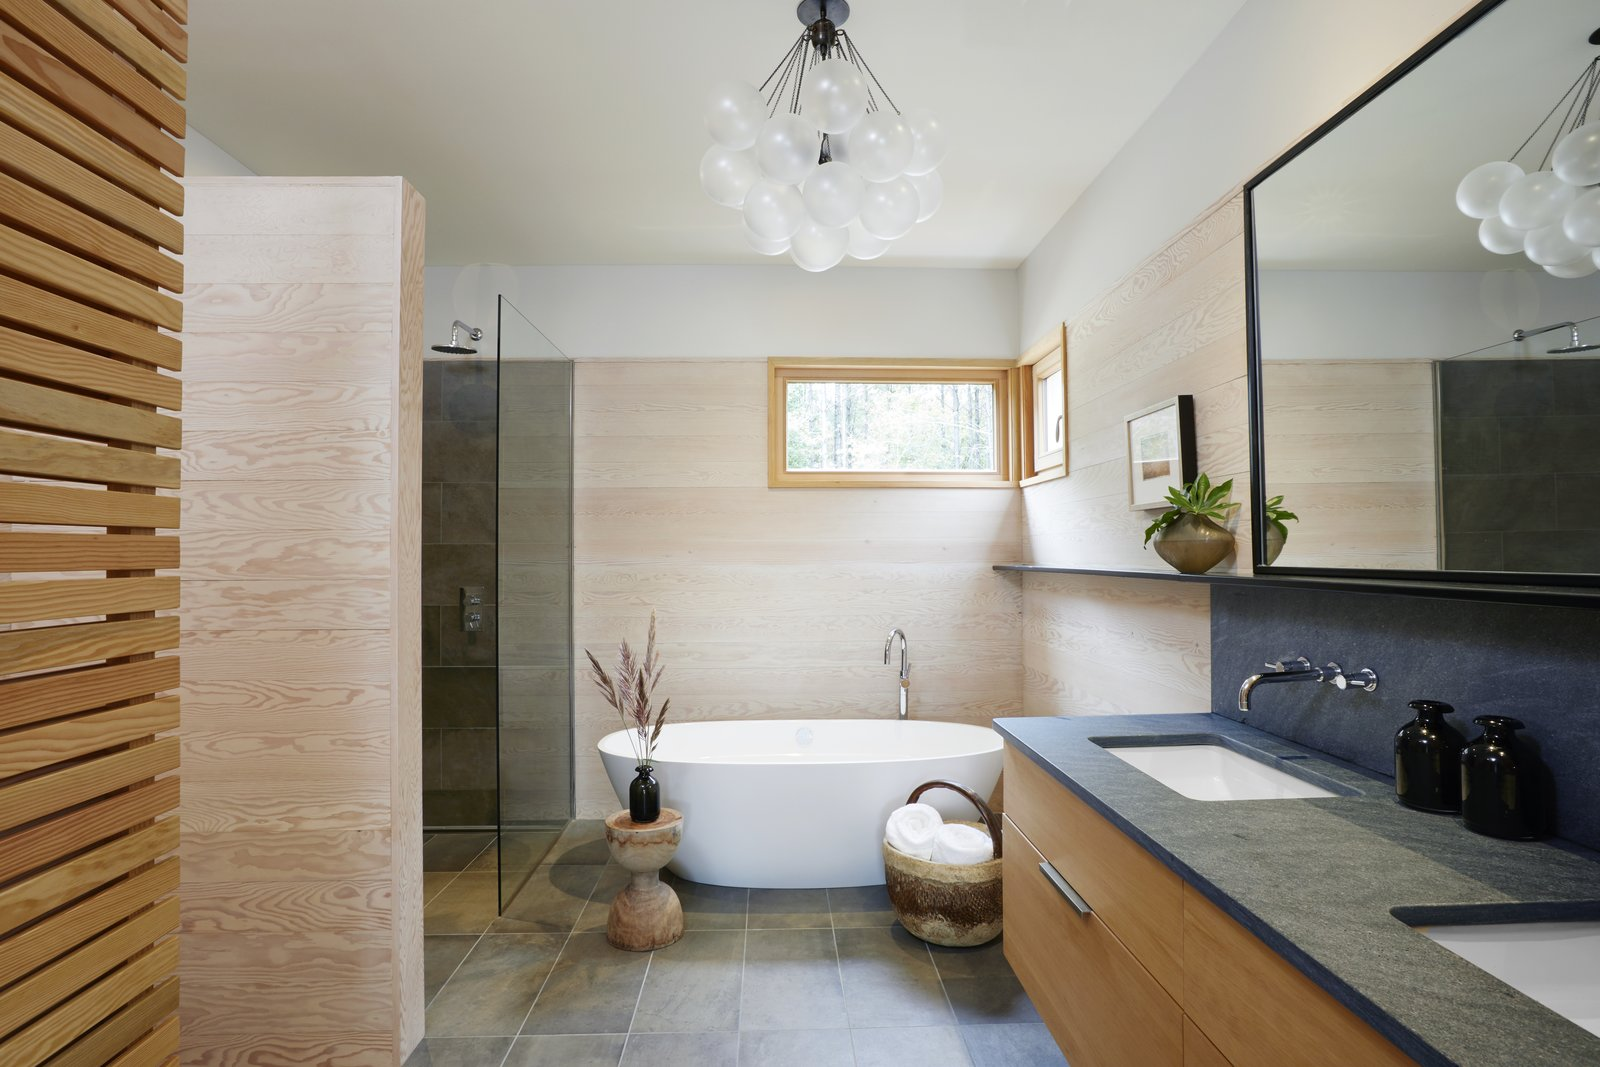 Bathroom: Design and ideas for modern homes & living